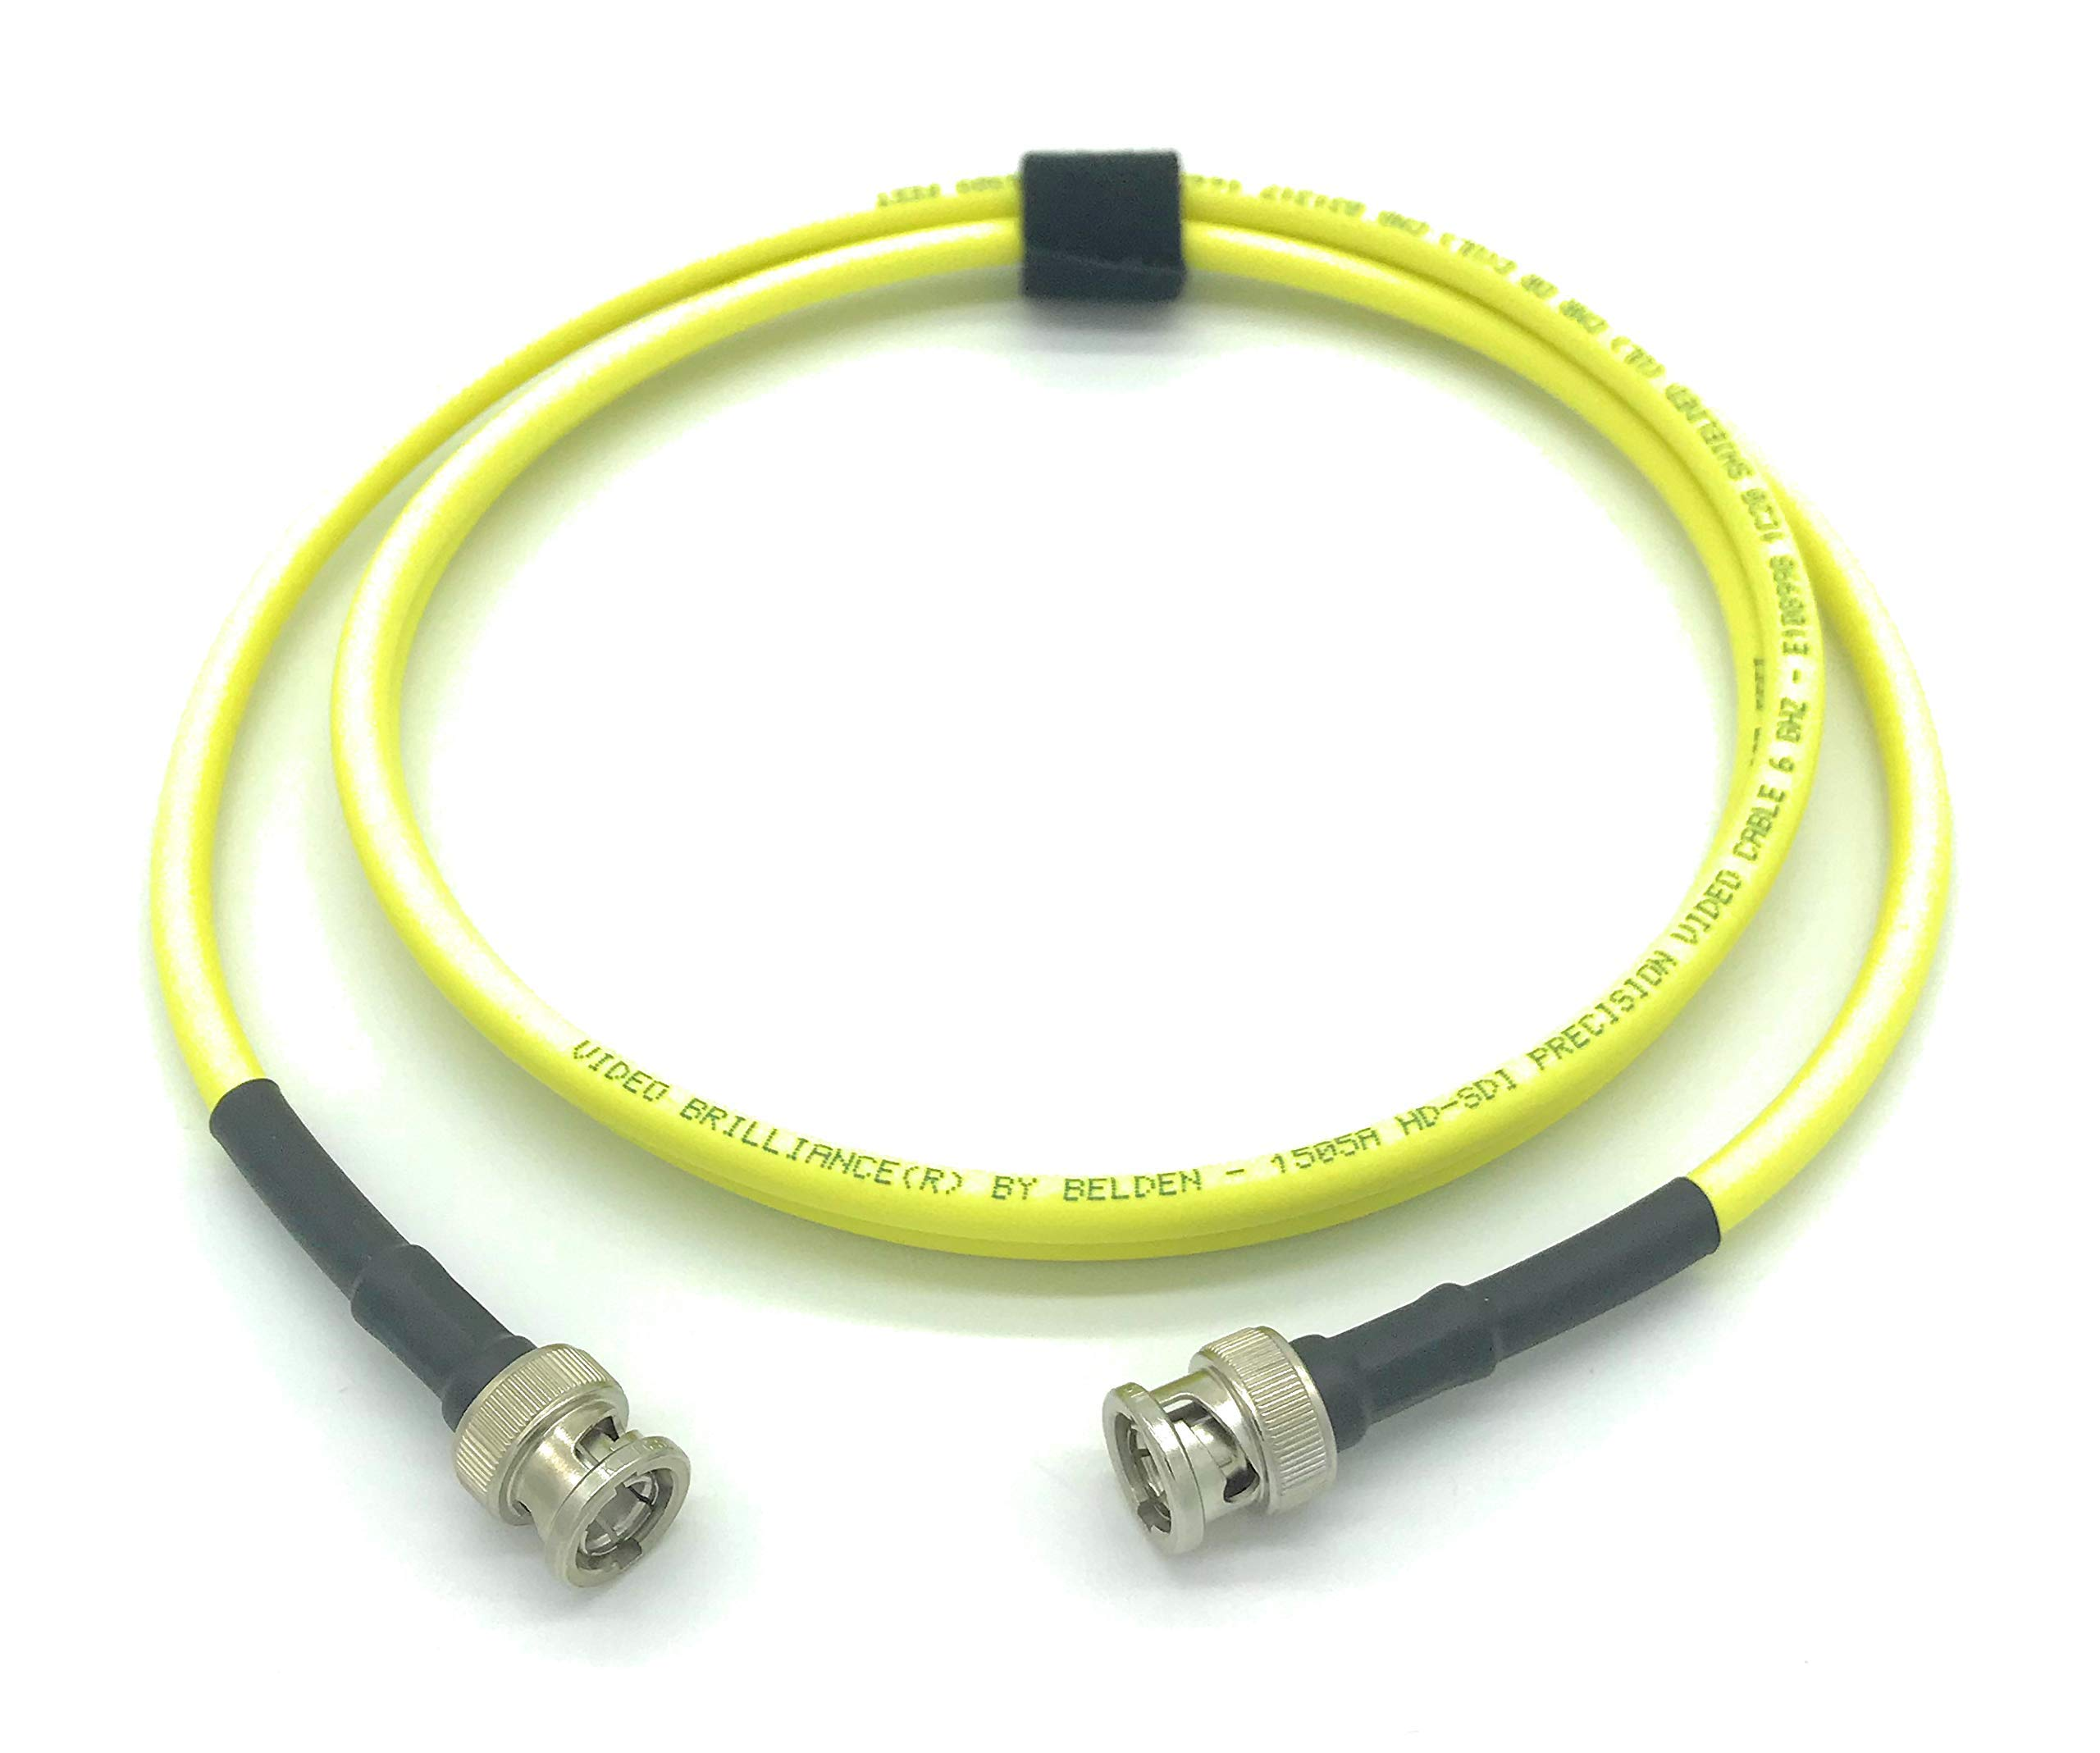 200ft AV-Cables 3G/6G HD SDI BNC Cable Belden 1505A RG59 - Yellow (200ft) by AV-Cables